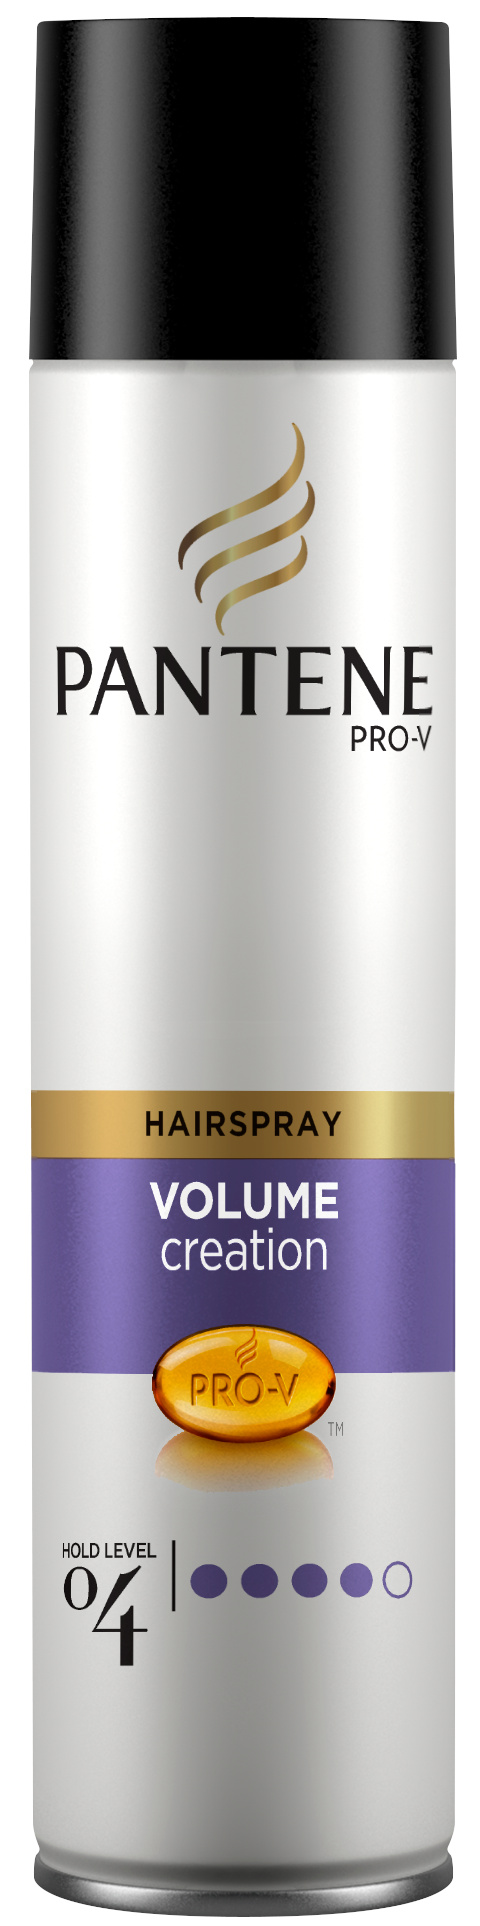 Pantene lak Volume Creation 250ml